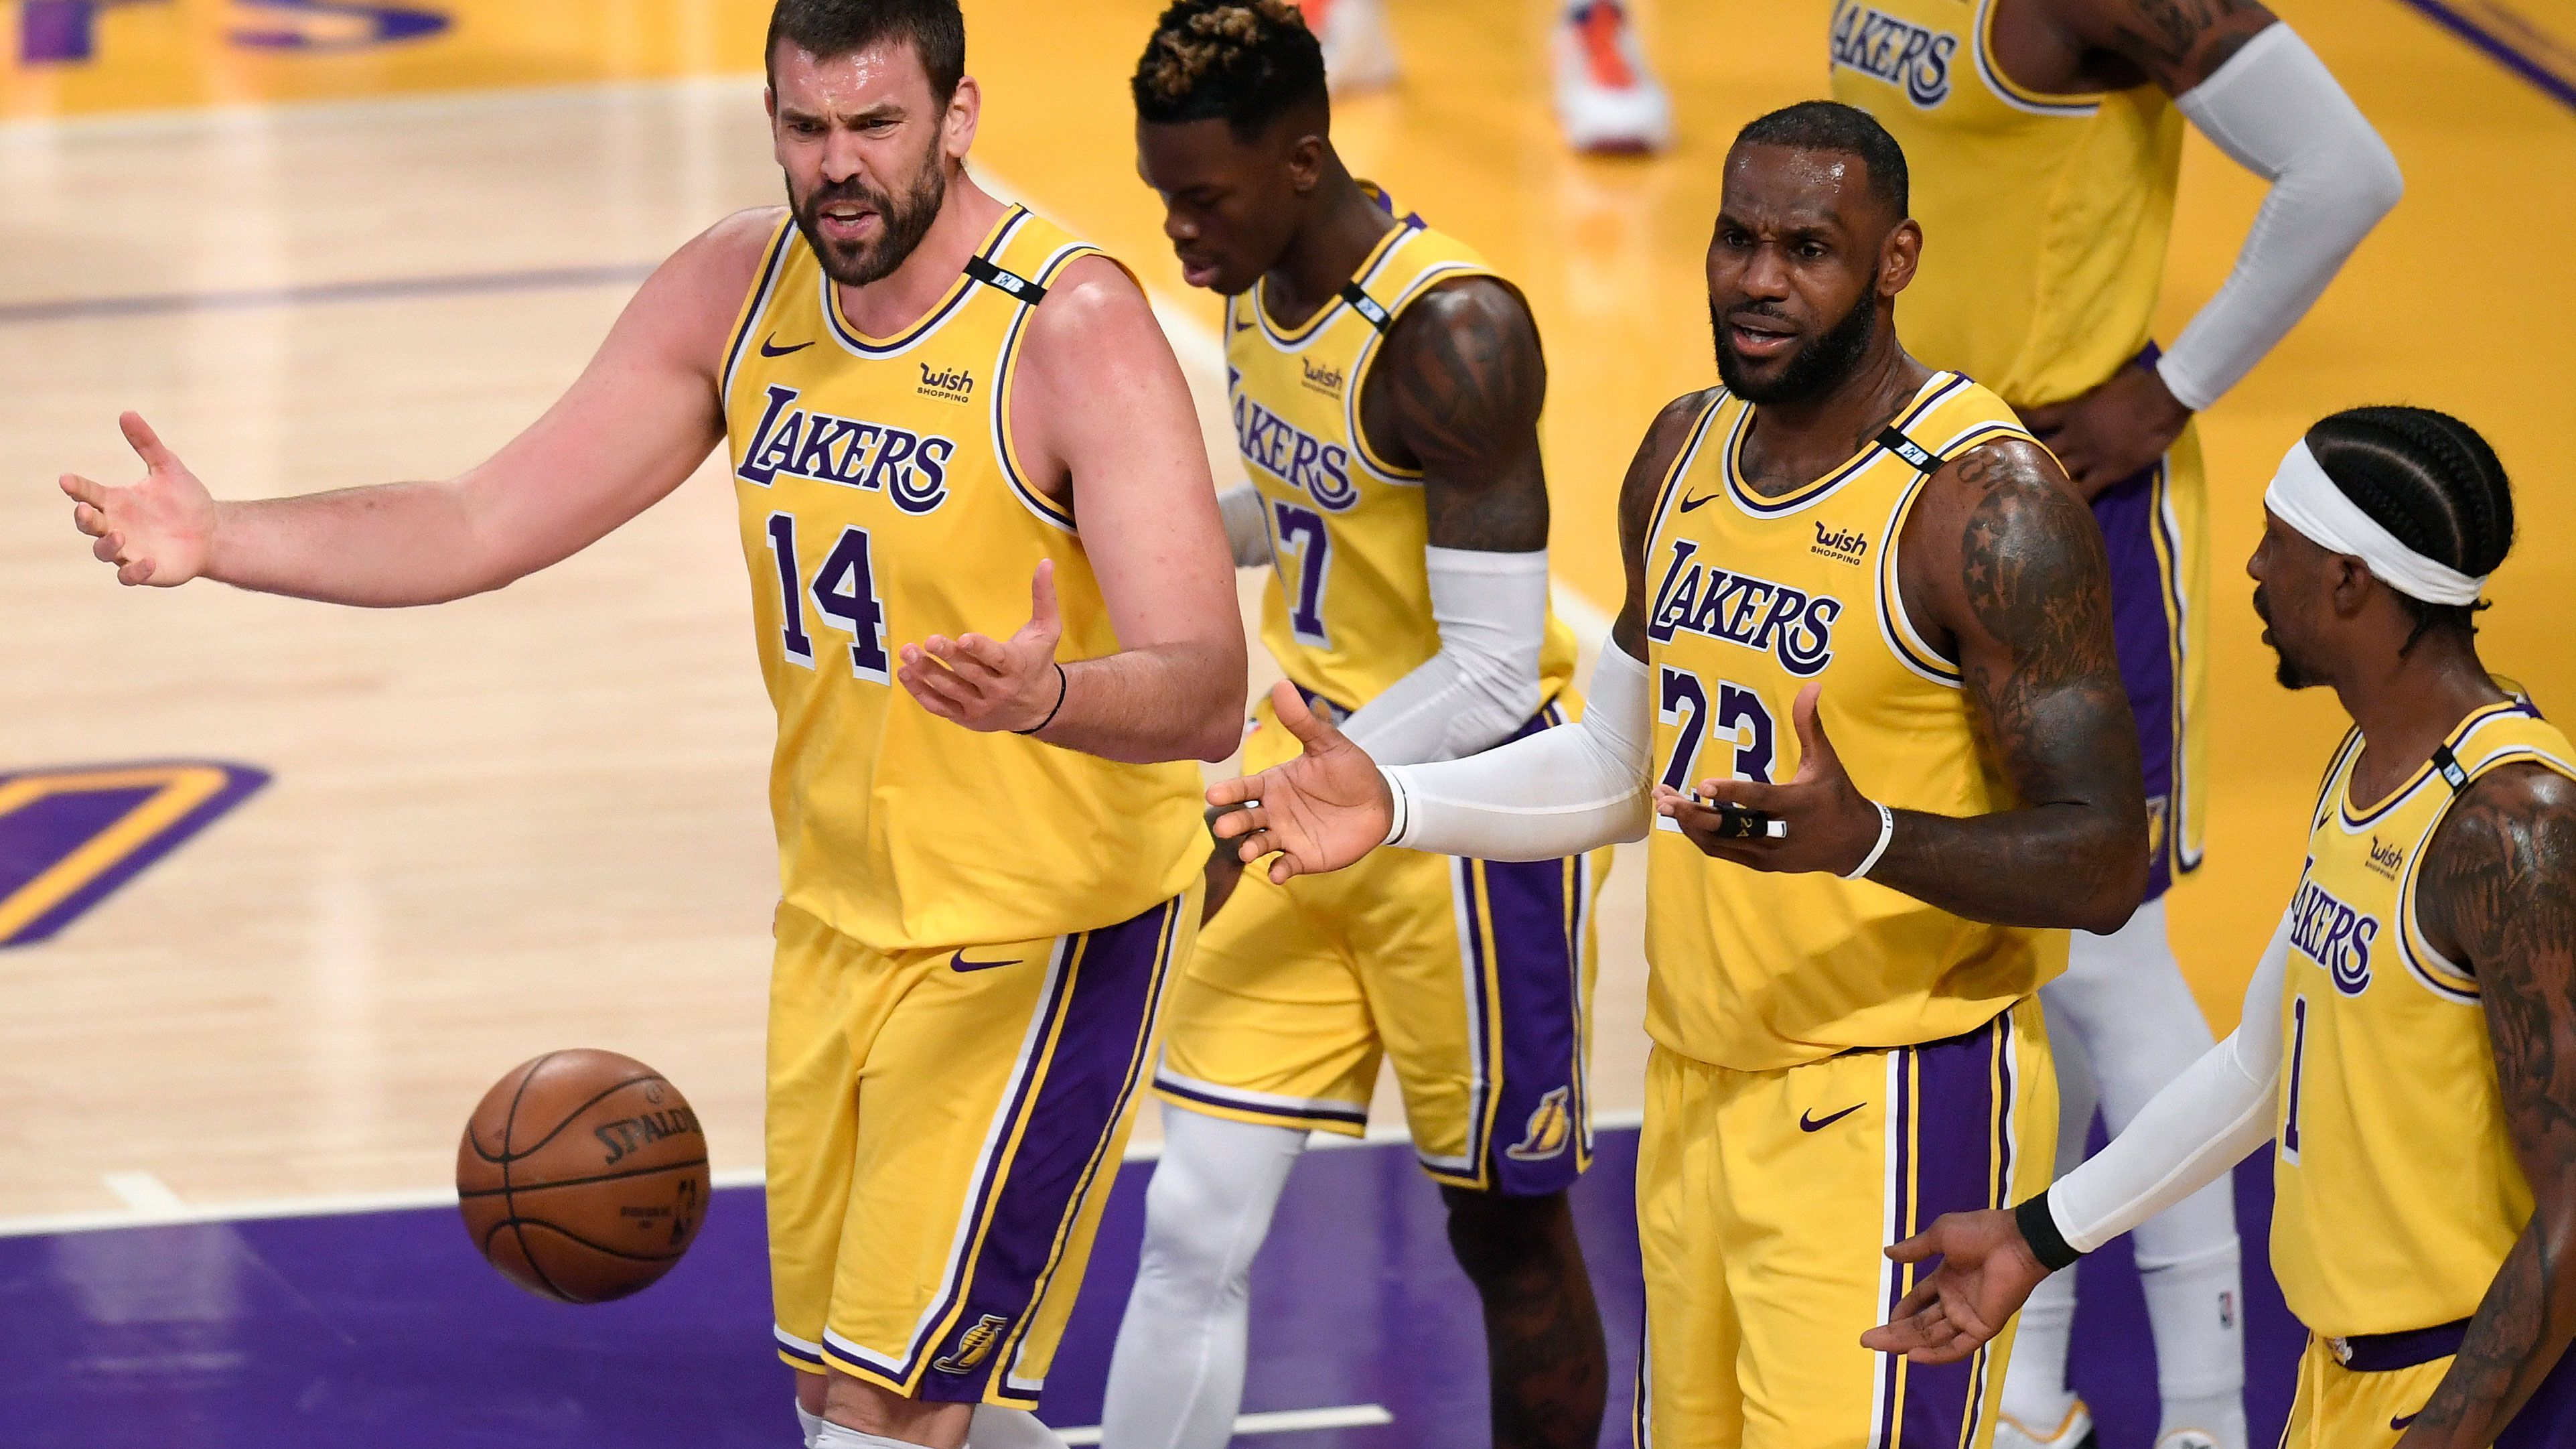 LeBron James and the LA Lakers on their way to elimination from the Playoffs.